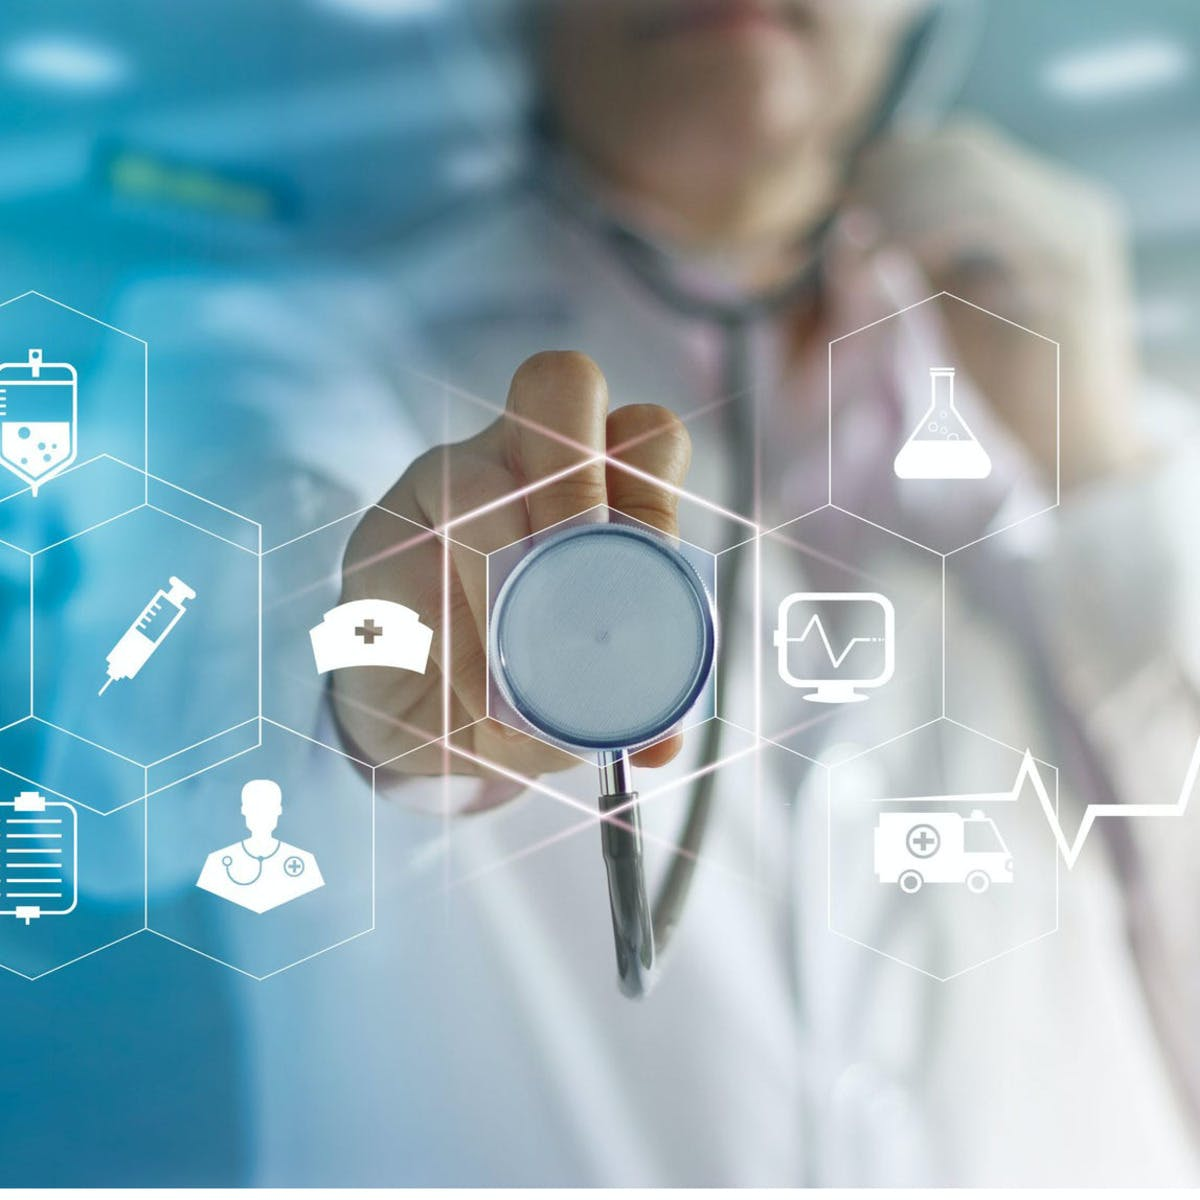 TECH MeD: Transdisciplinary Education for Critical Hacks of Medical Devices